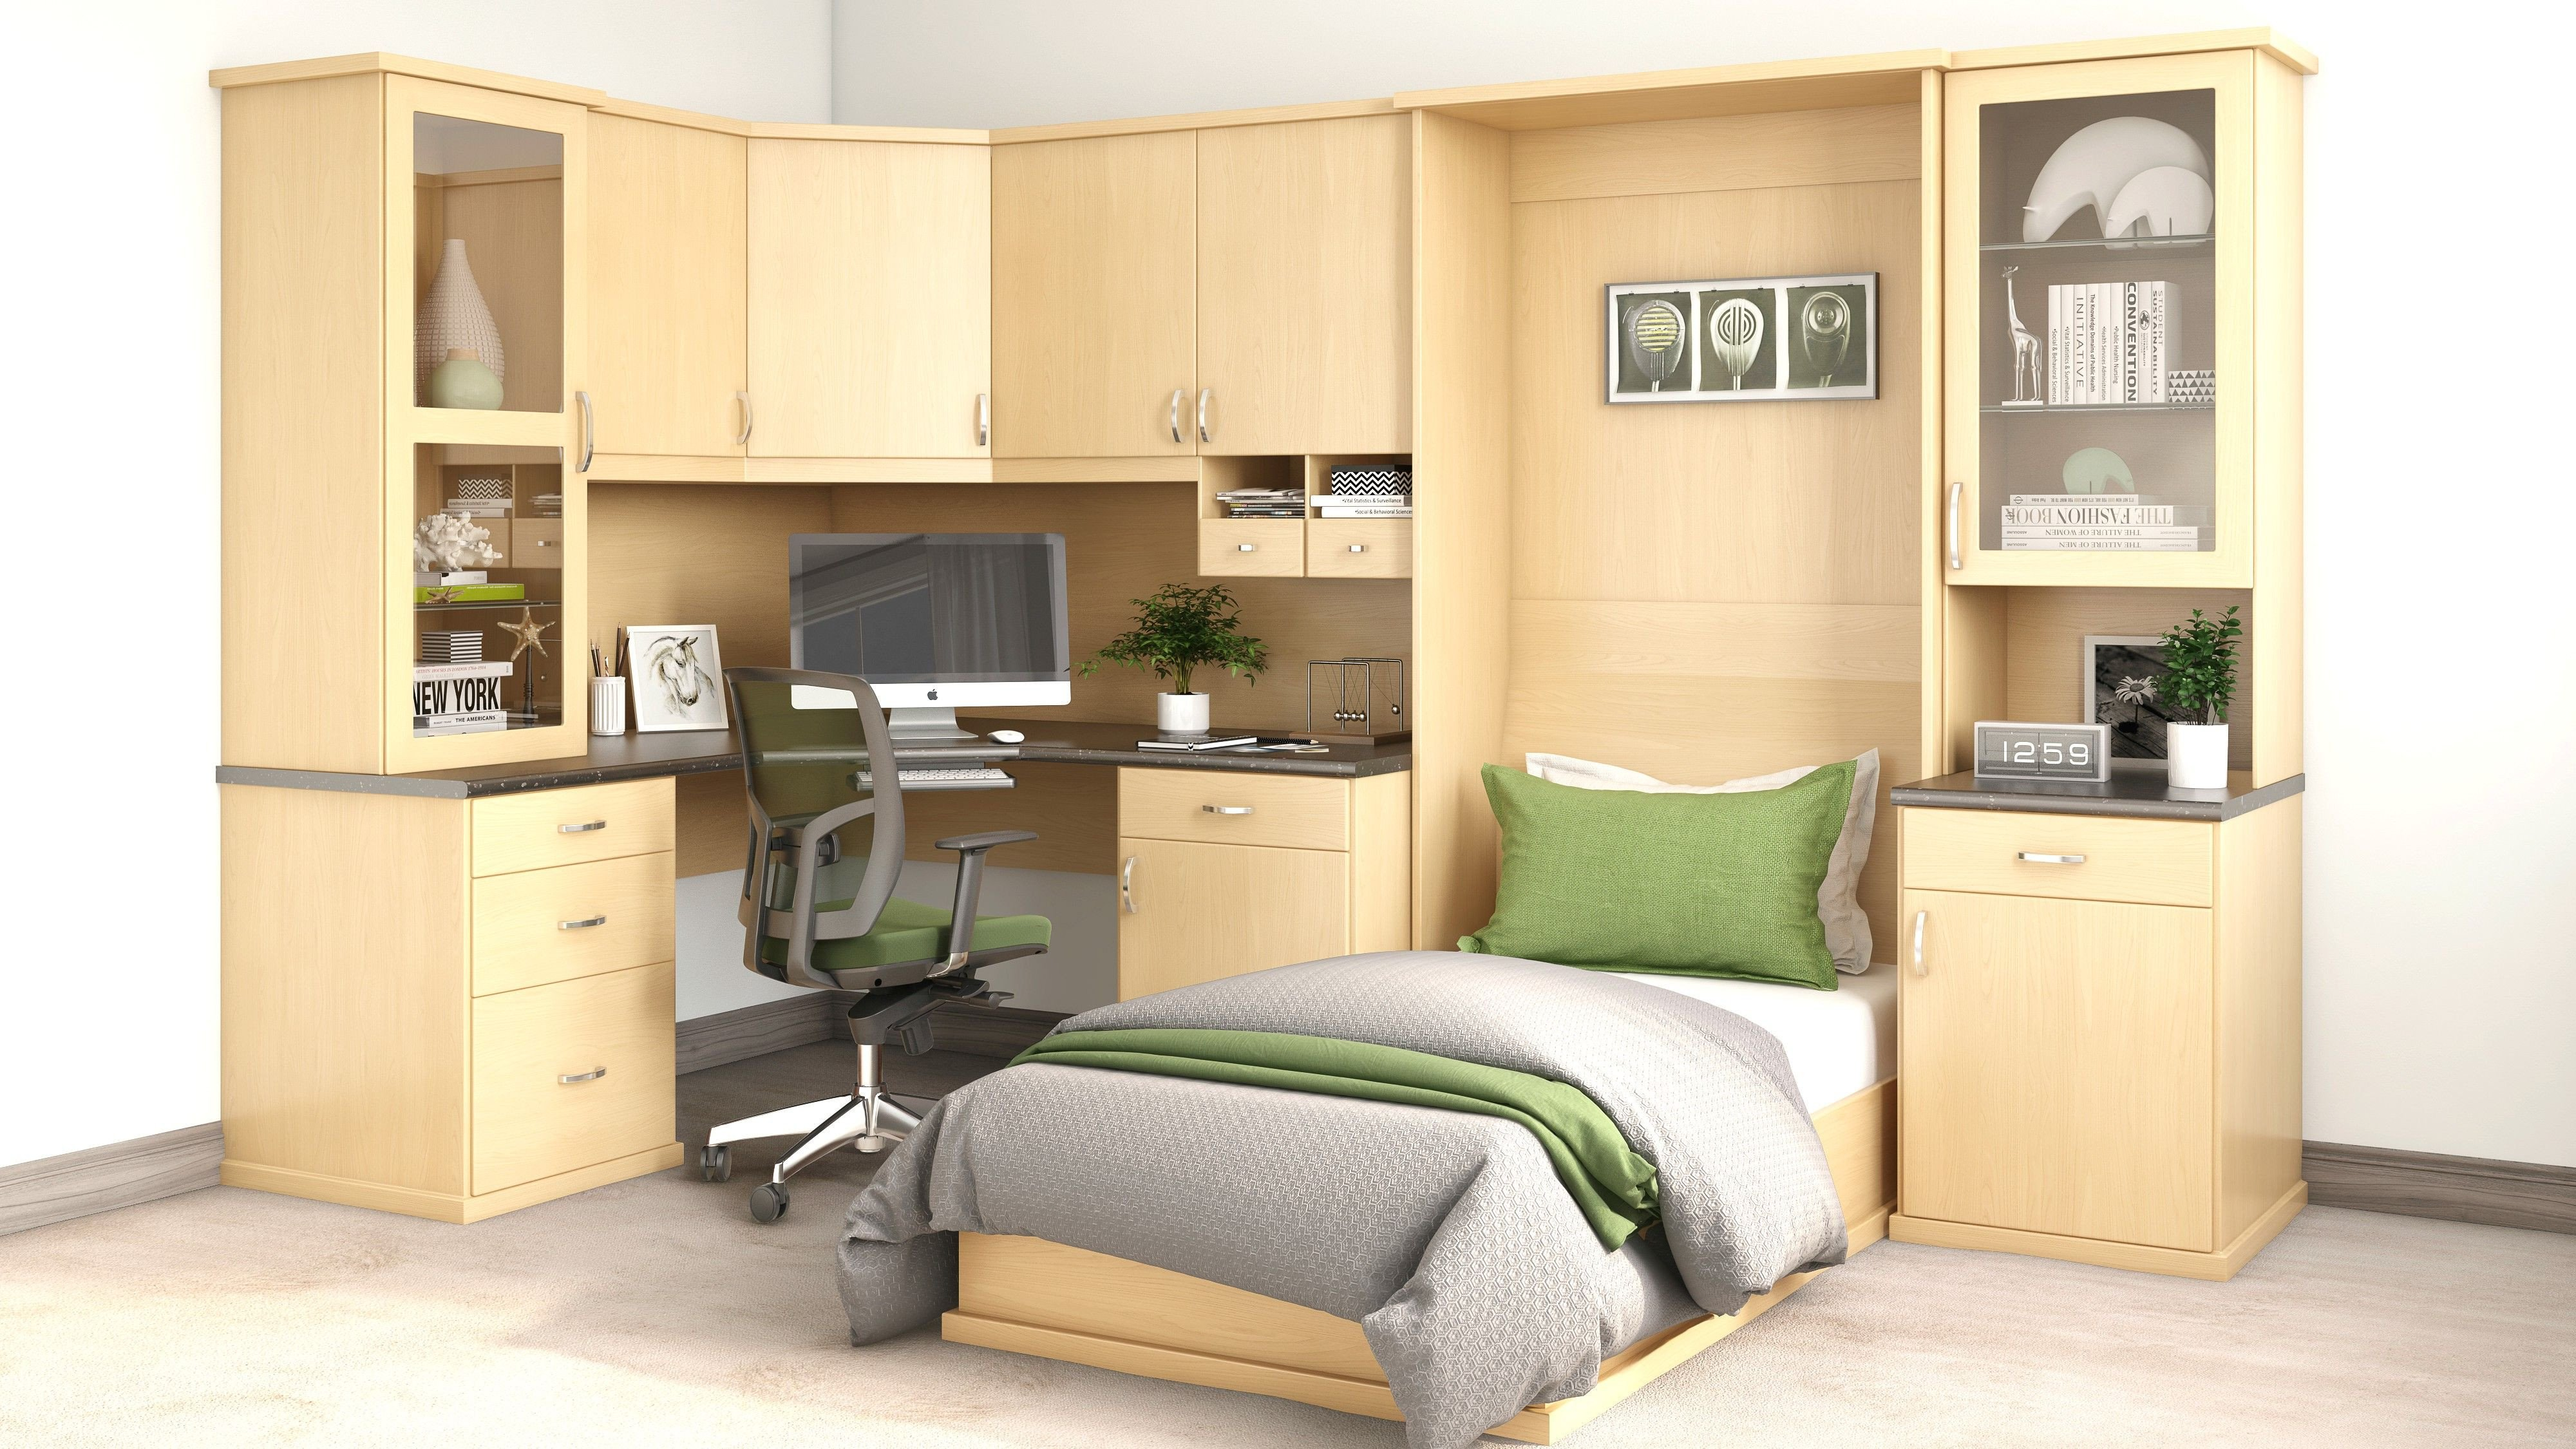 Bedroom Wall Units with Drawers Elegant Closet World Bedtec™ Wall Beds